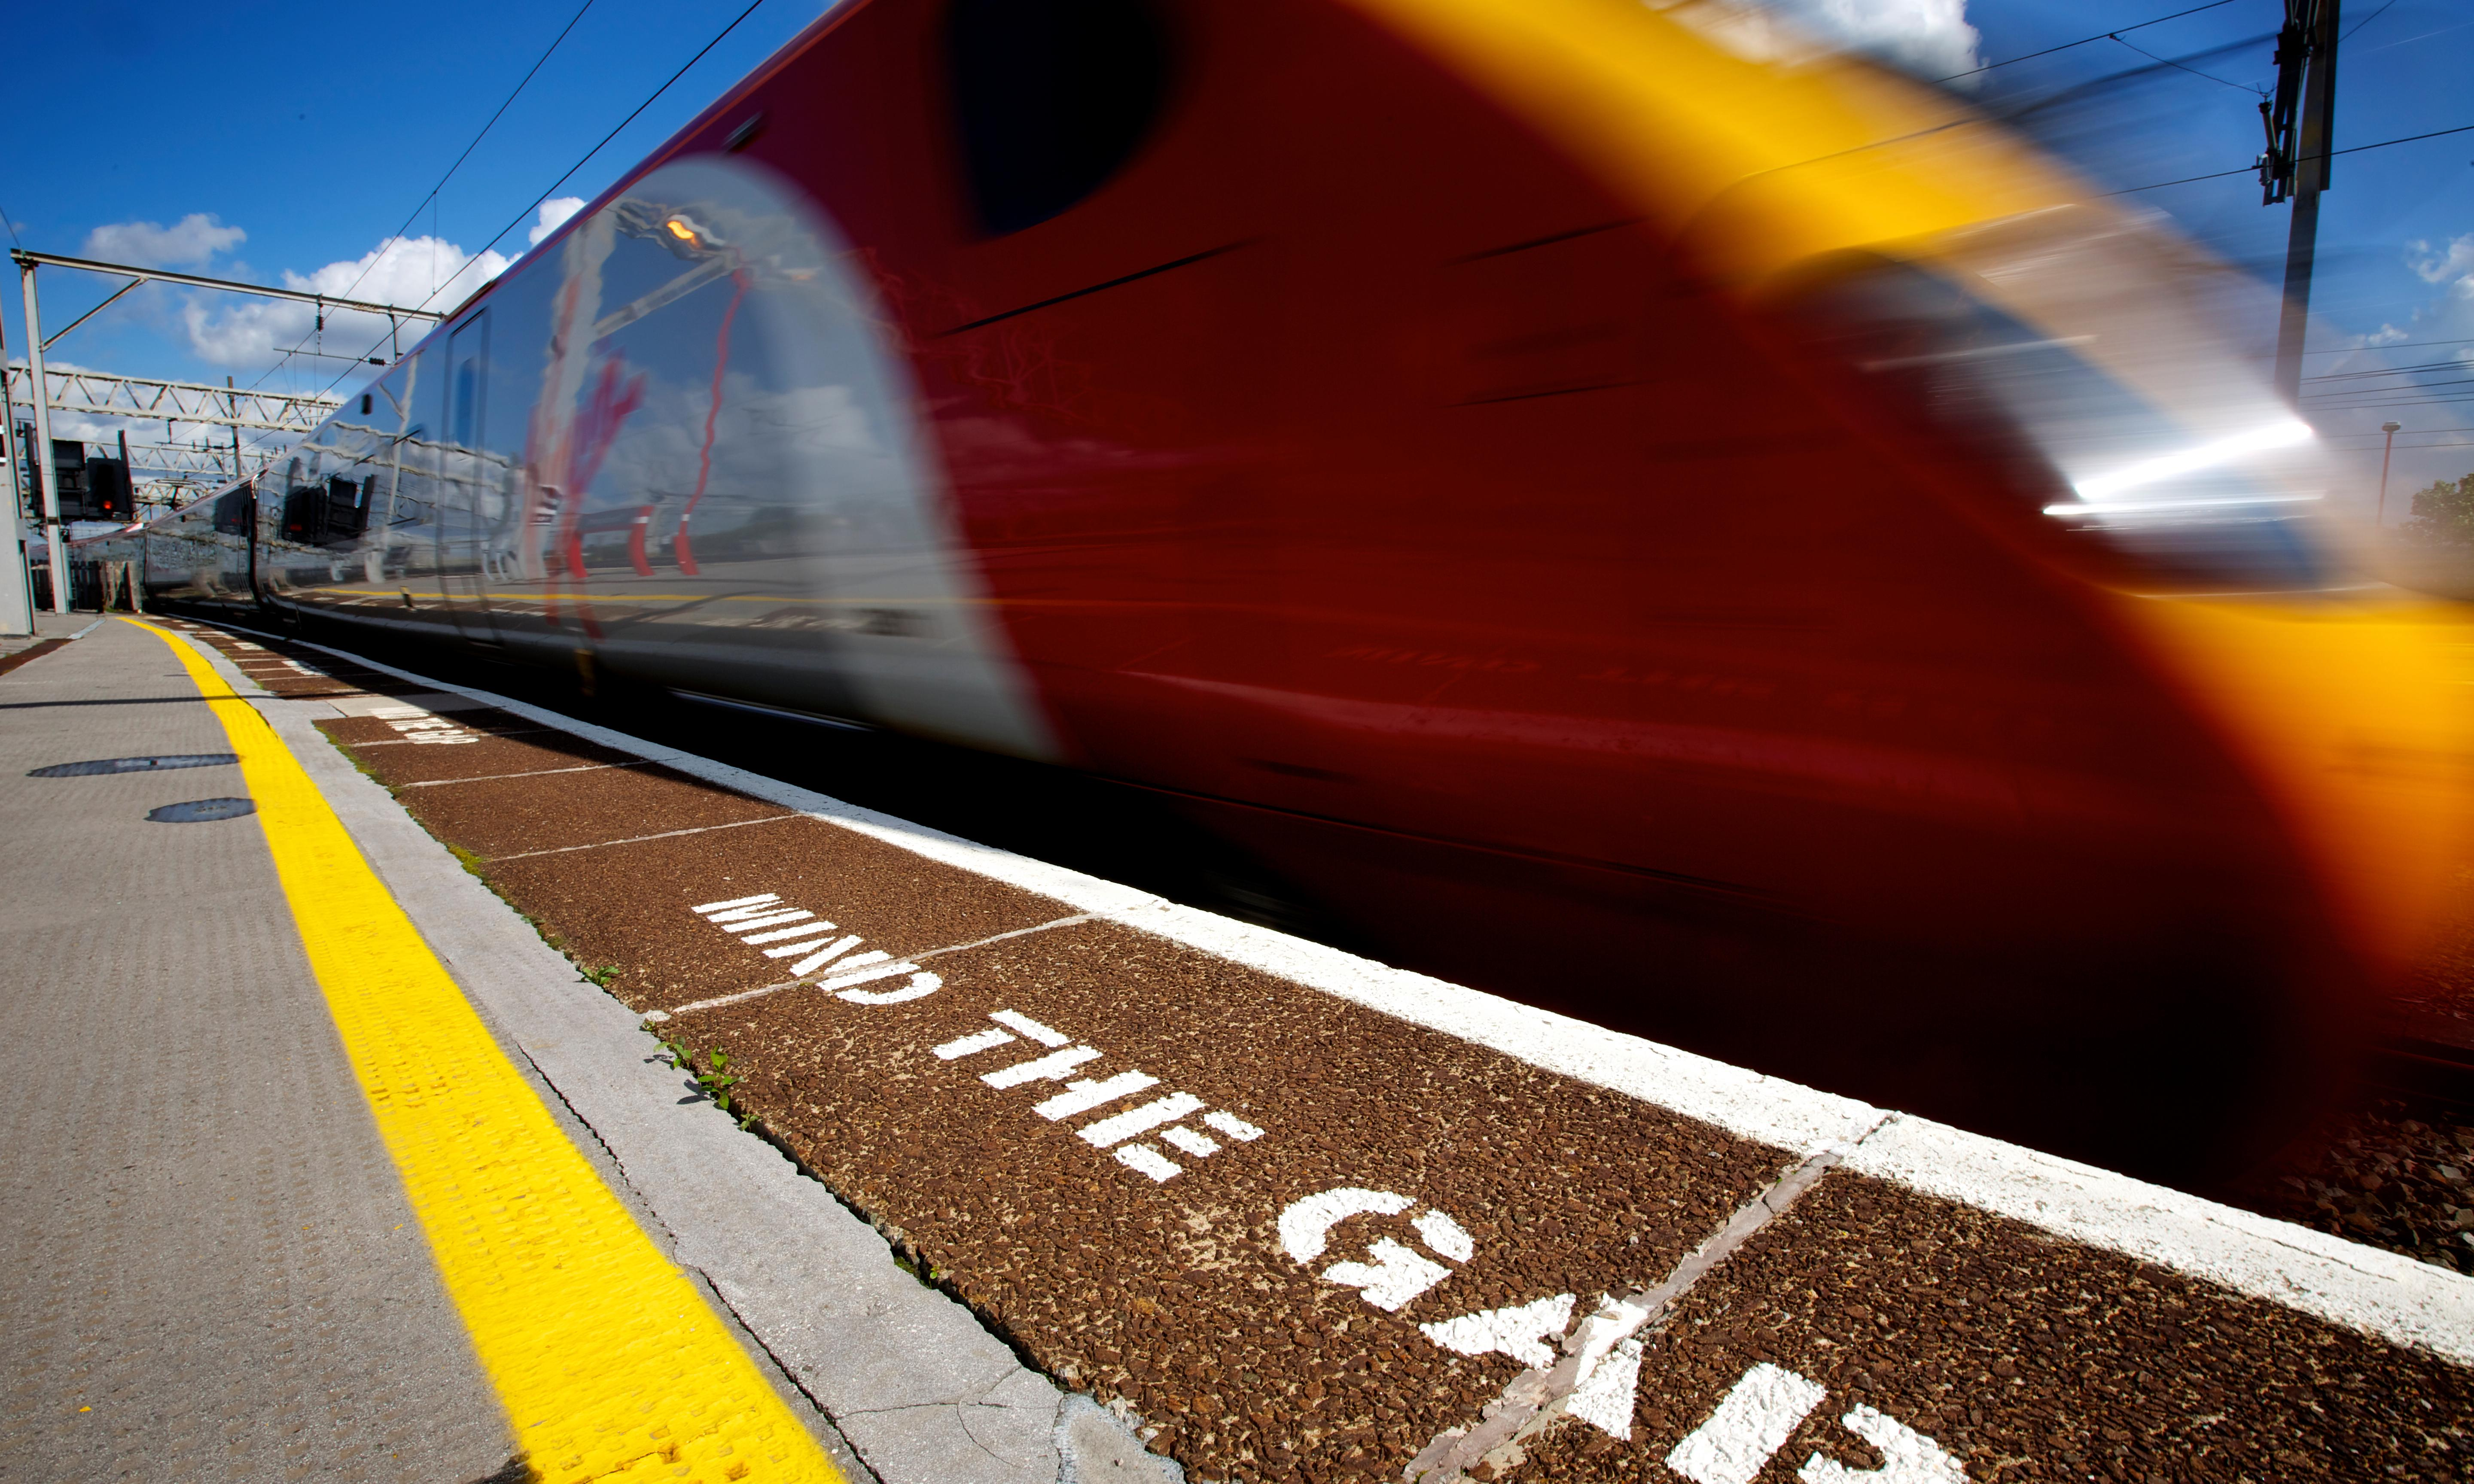 Tilting tech and talking toilets: the good and bad of Virgin Trains